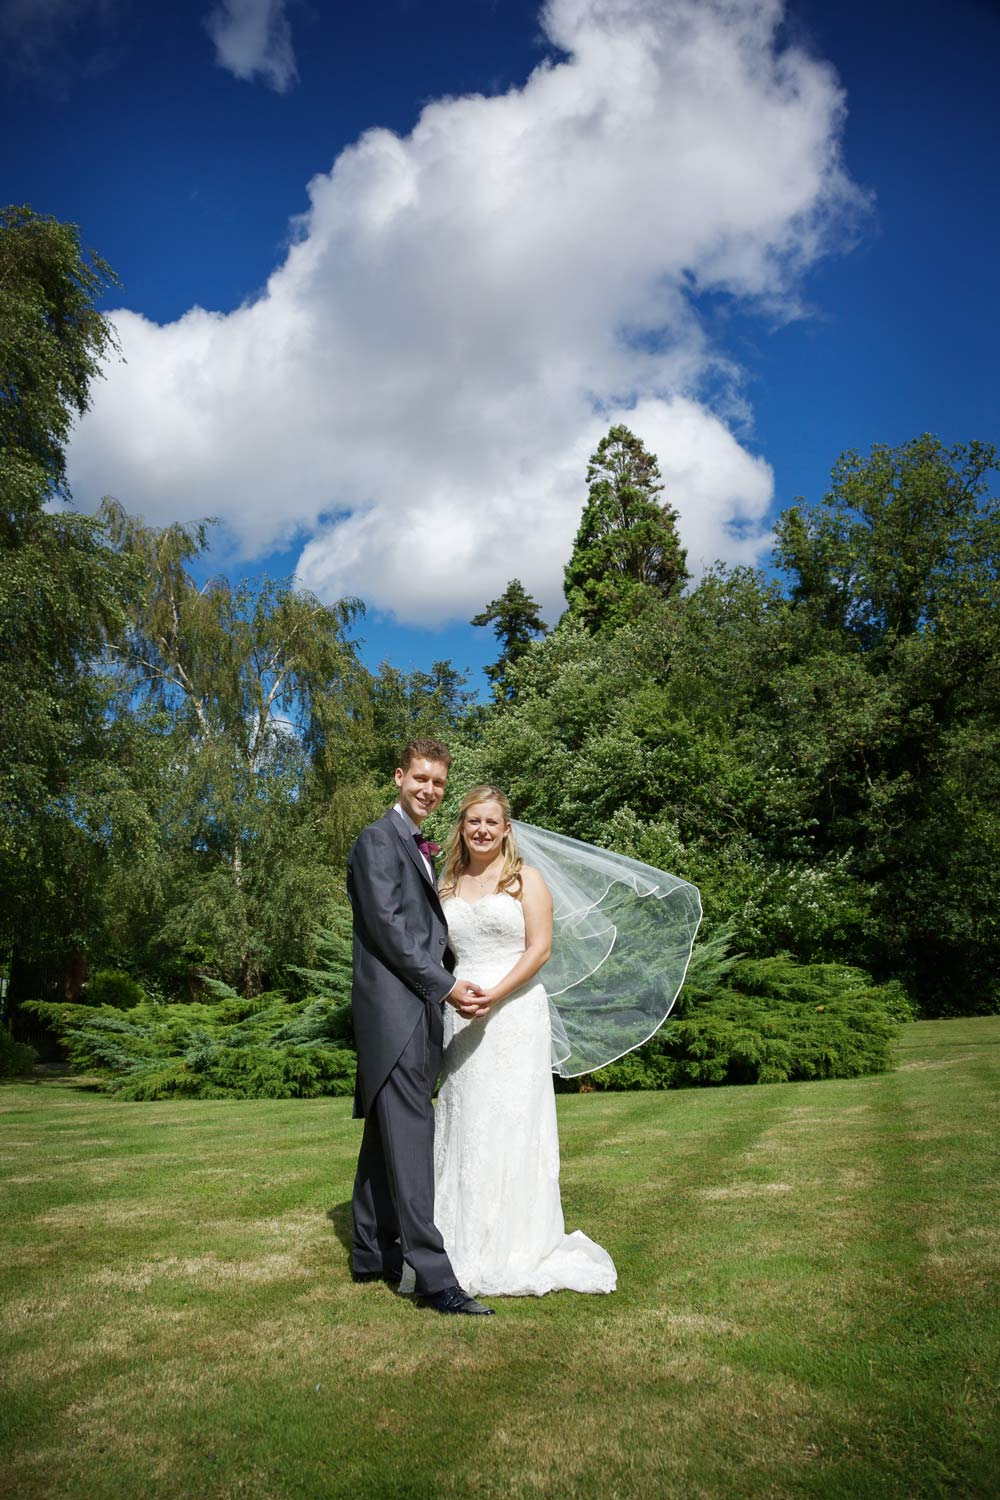 Audleys_Wood_Wedding_Photographer_Basingstoke_035.jpg